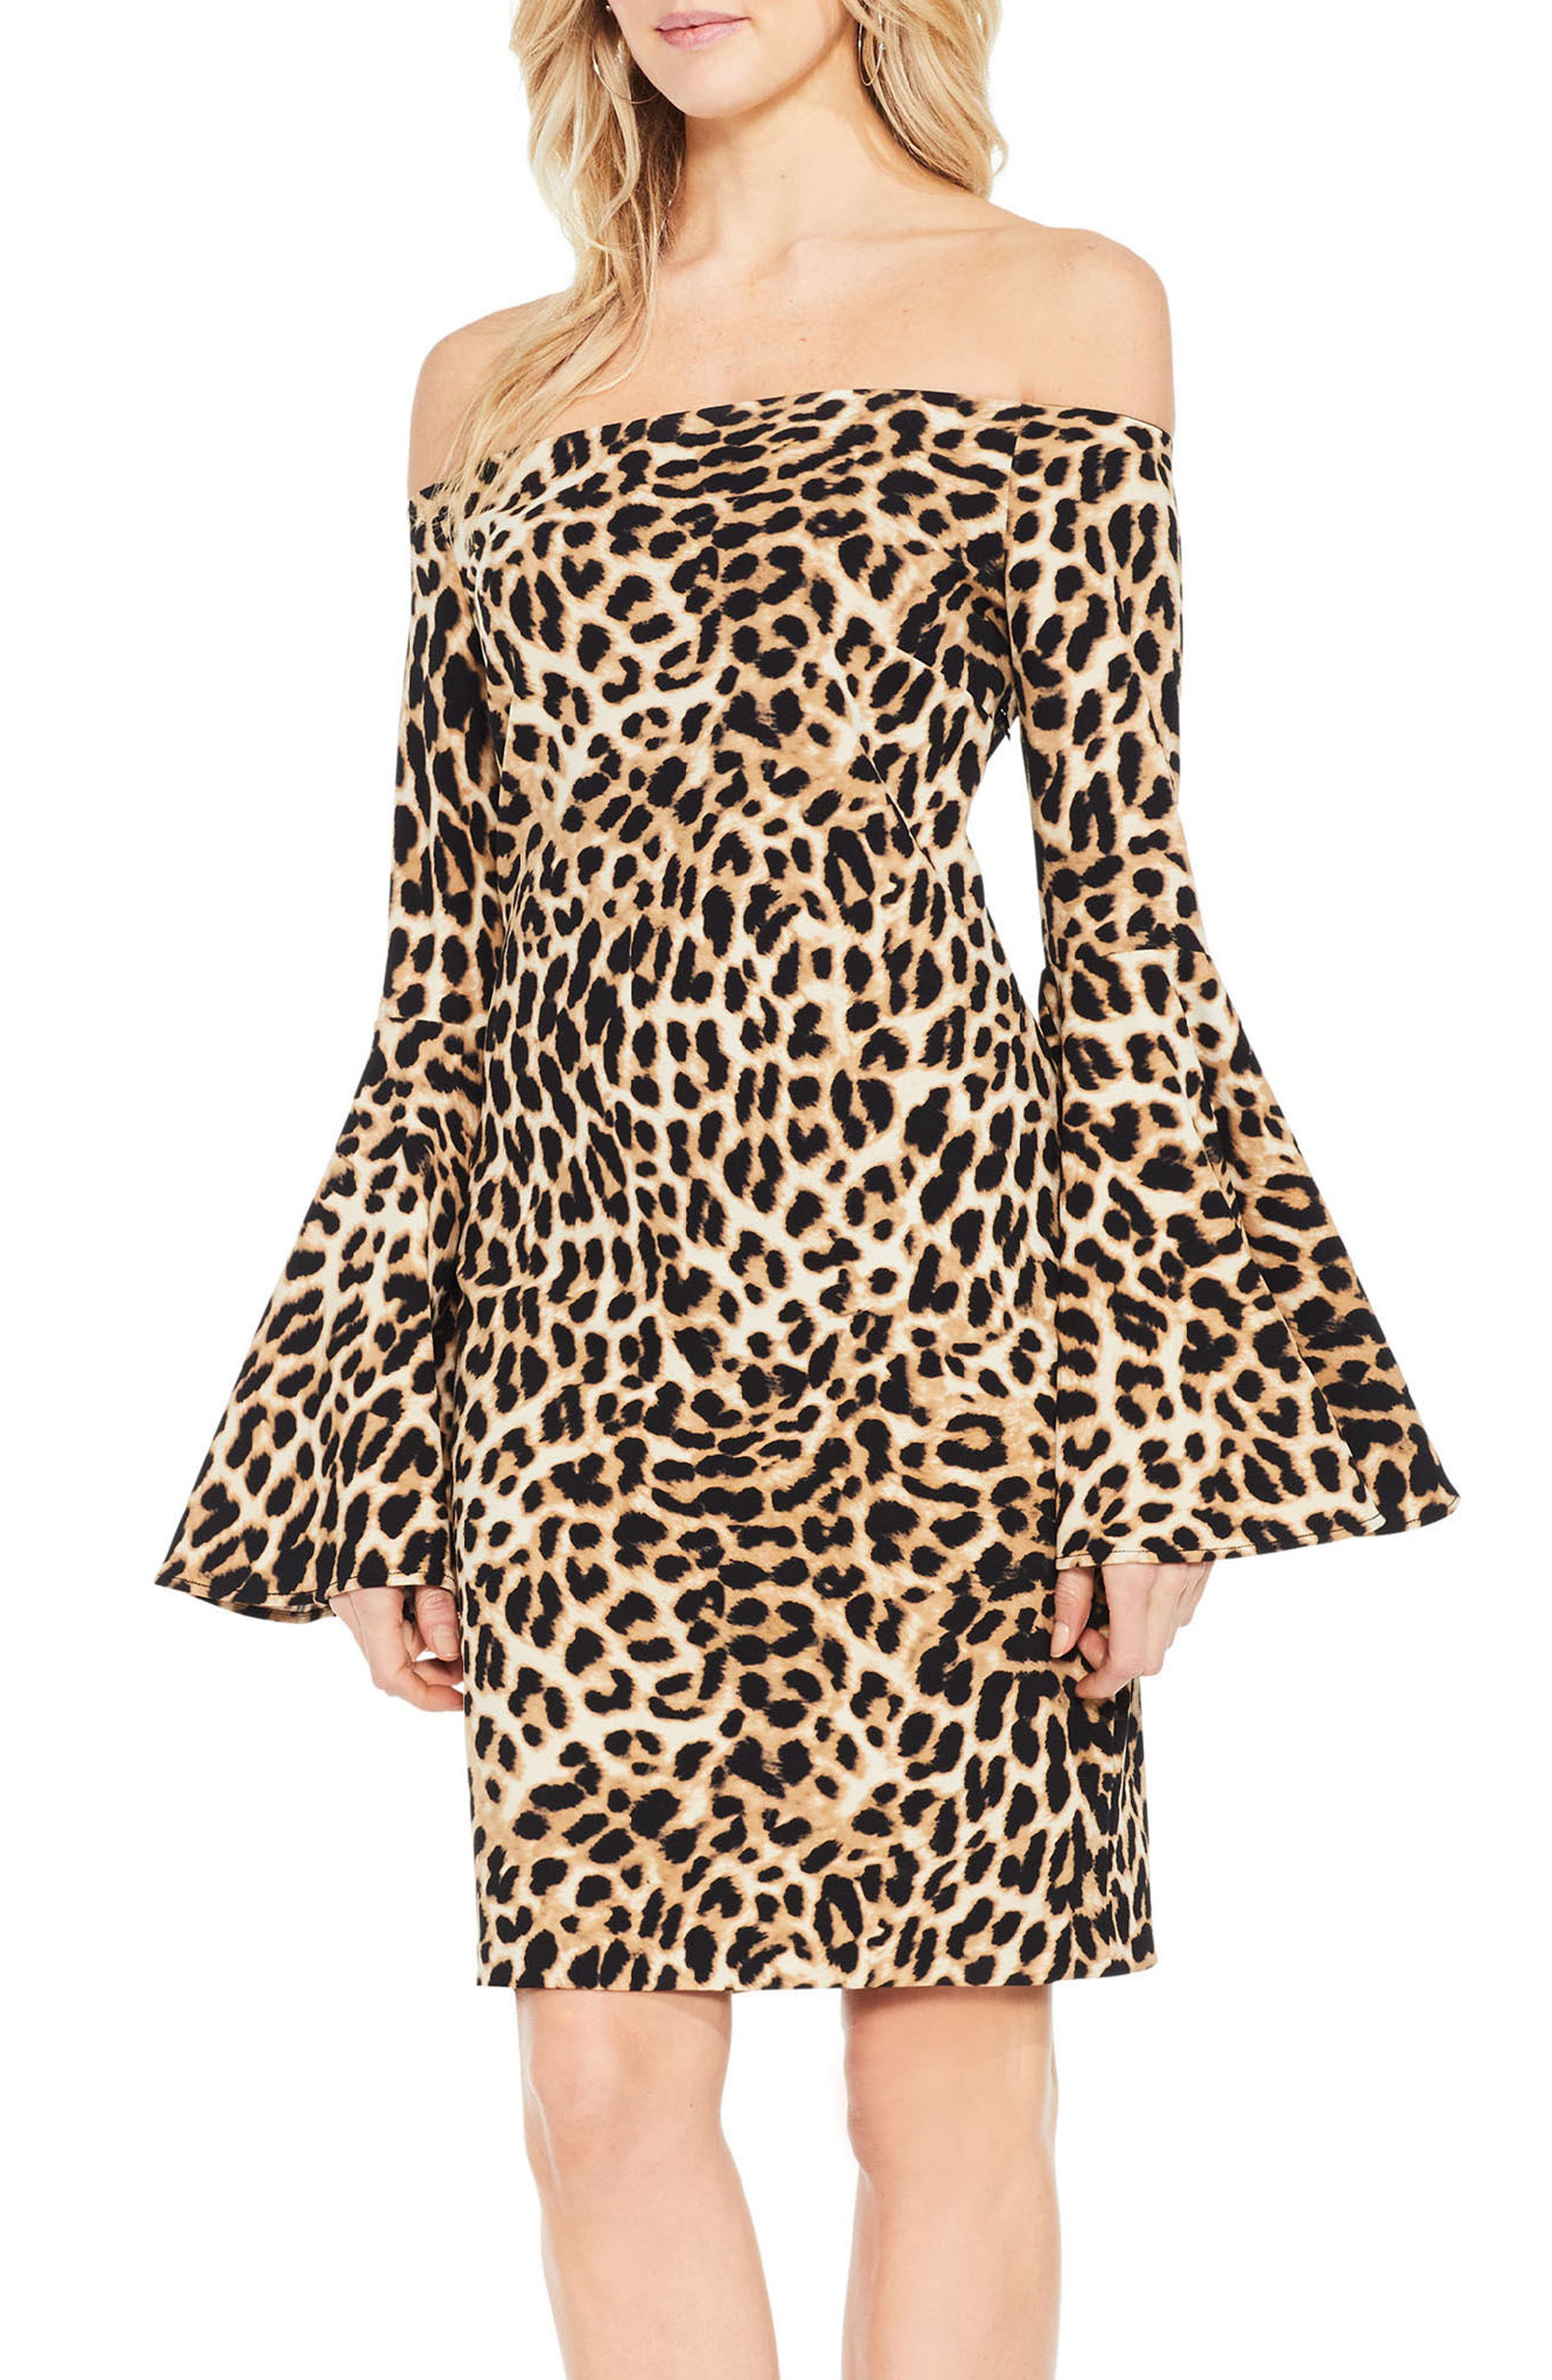 Main Image - Vince Camuto Animal Print Off the Shoulder Dress